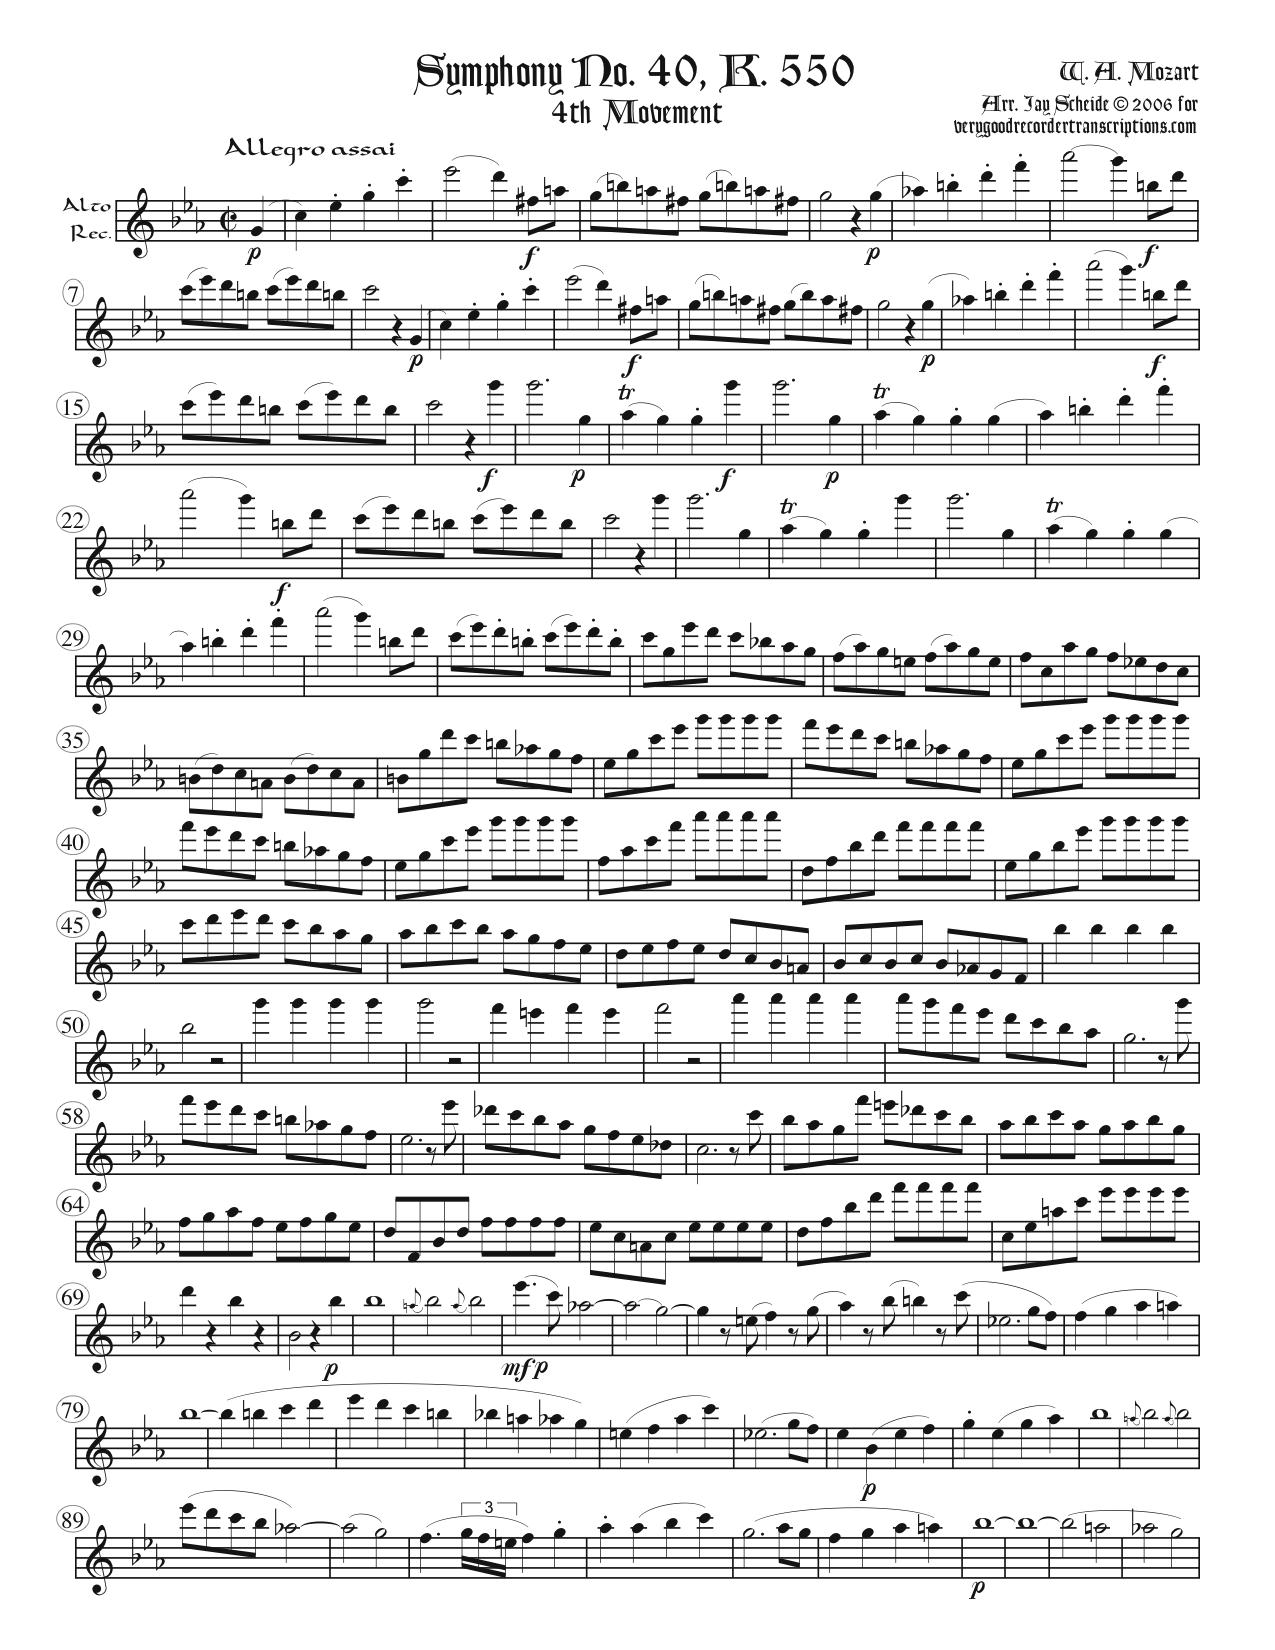 A Late Symphonic Movement and an Early One